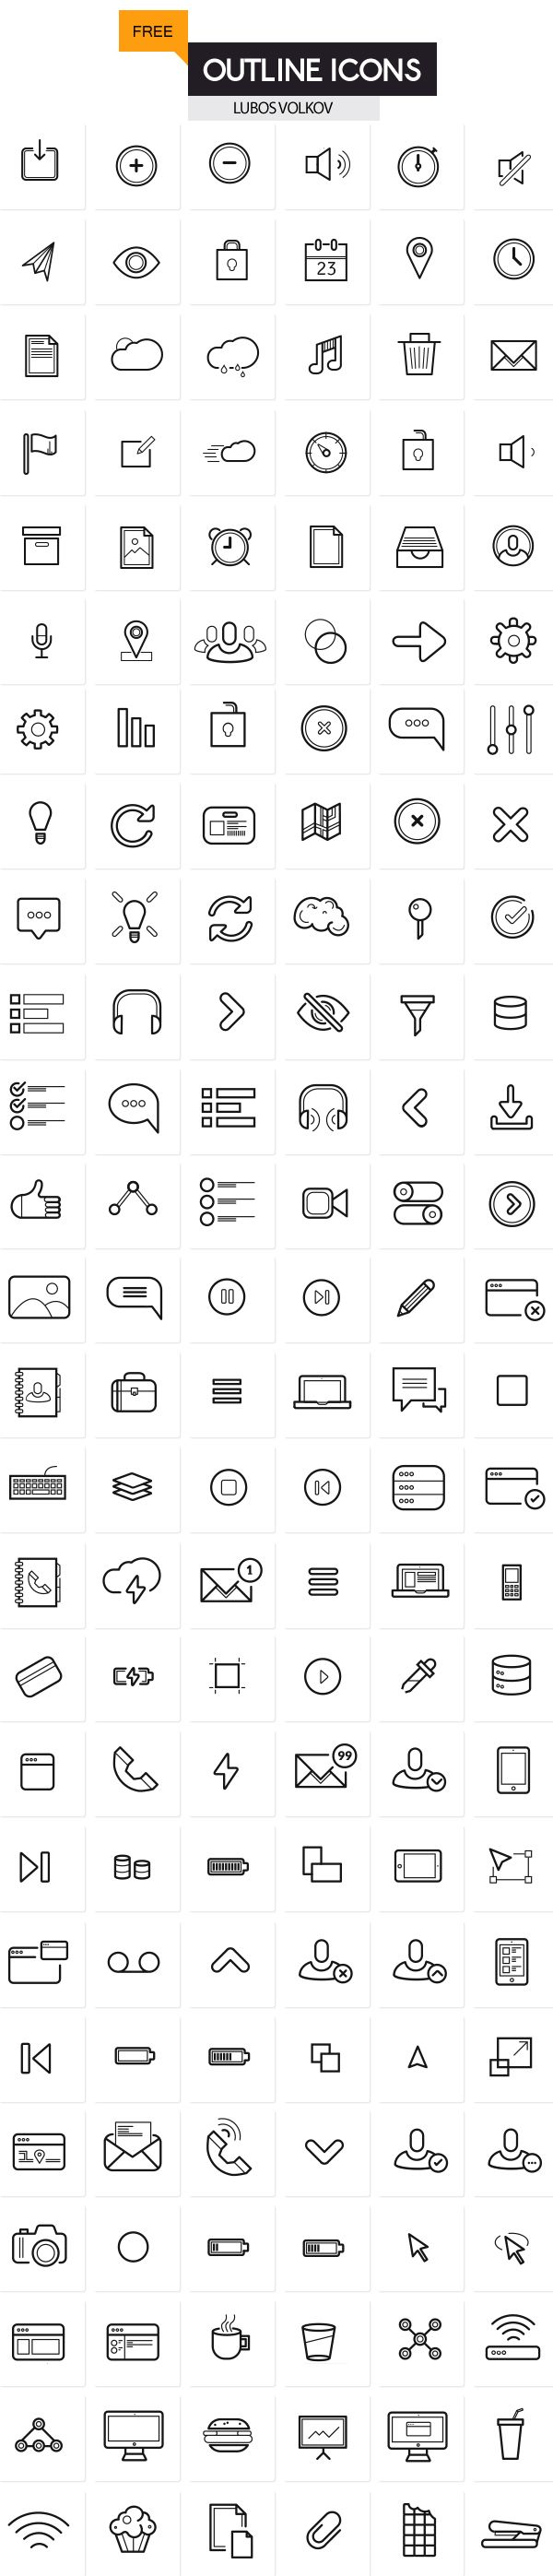 Outline Icons Set (200 free icons) #vectoricons #outlineicons #freeicons #iconsfordesigners